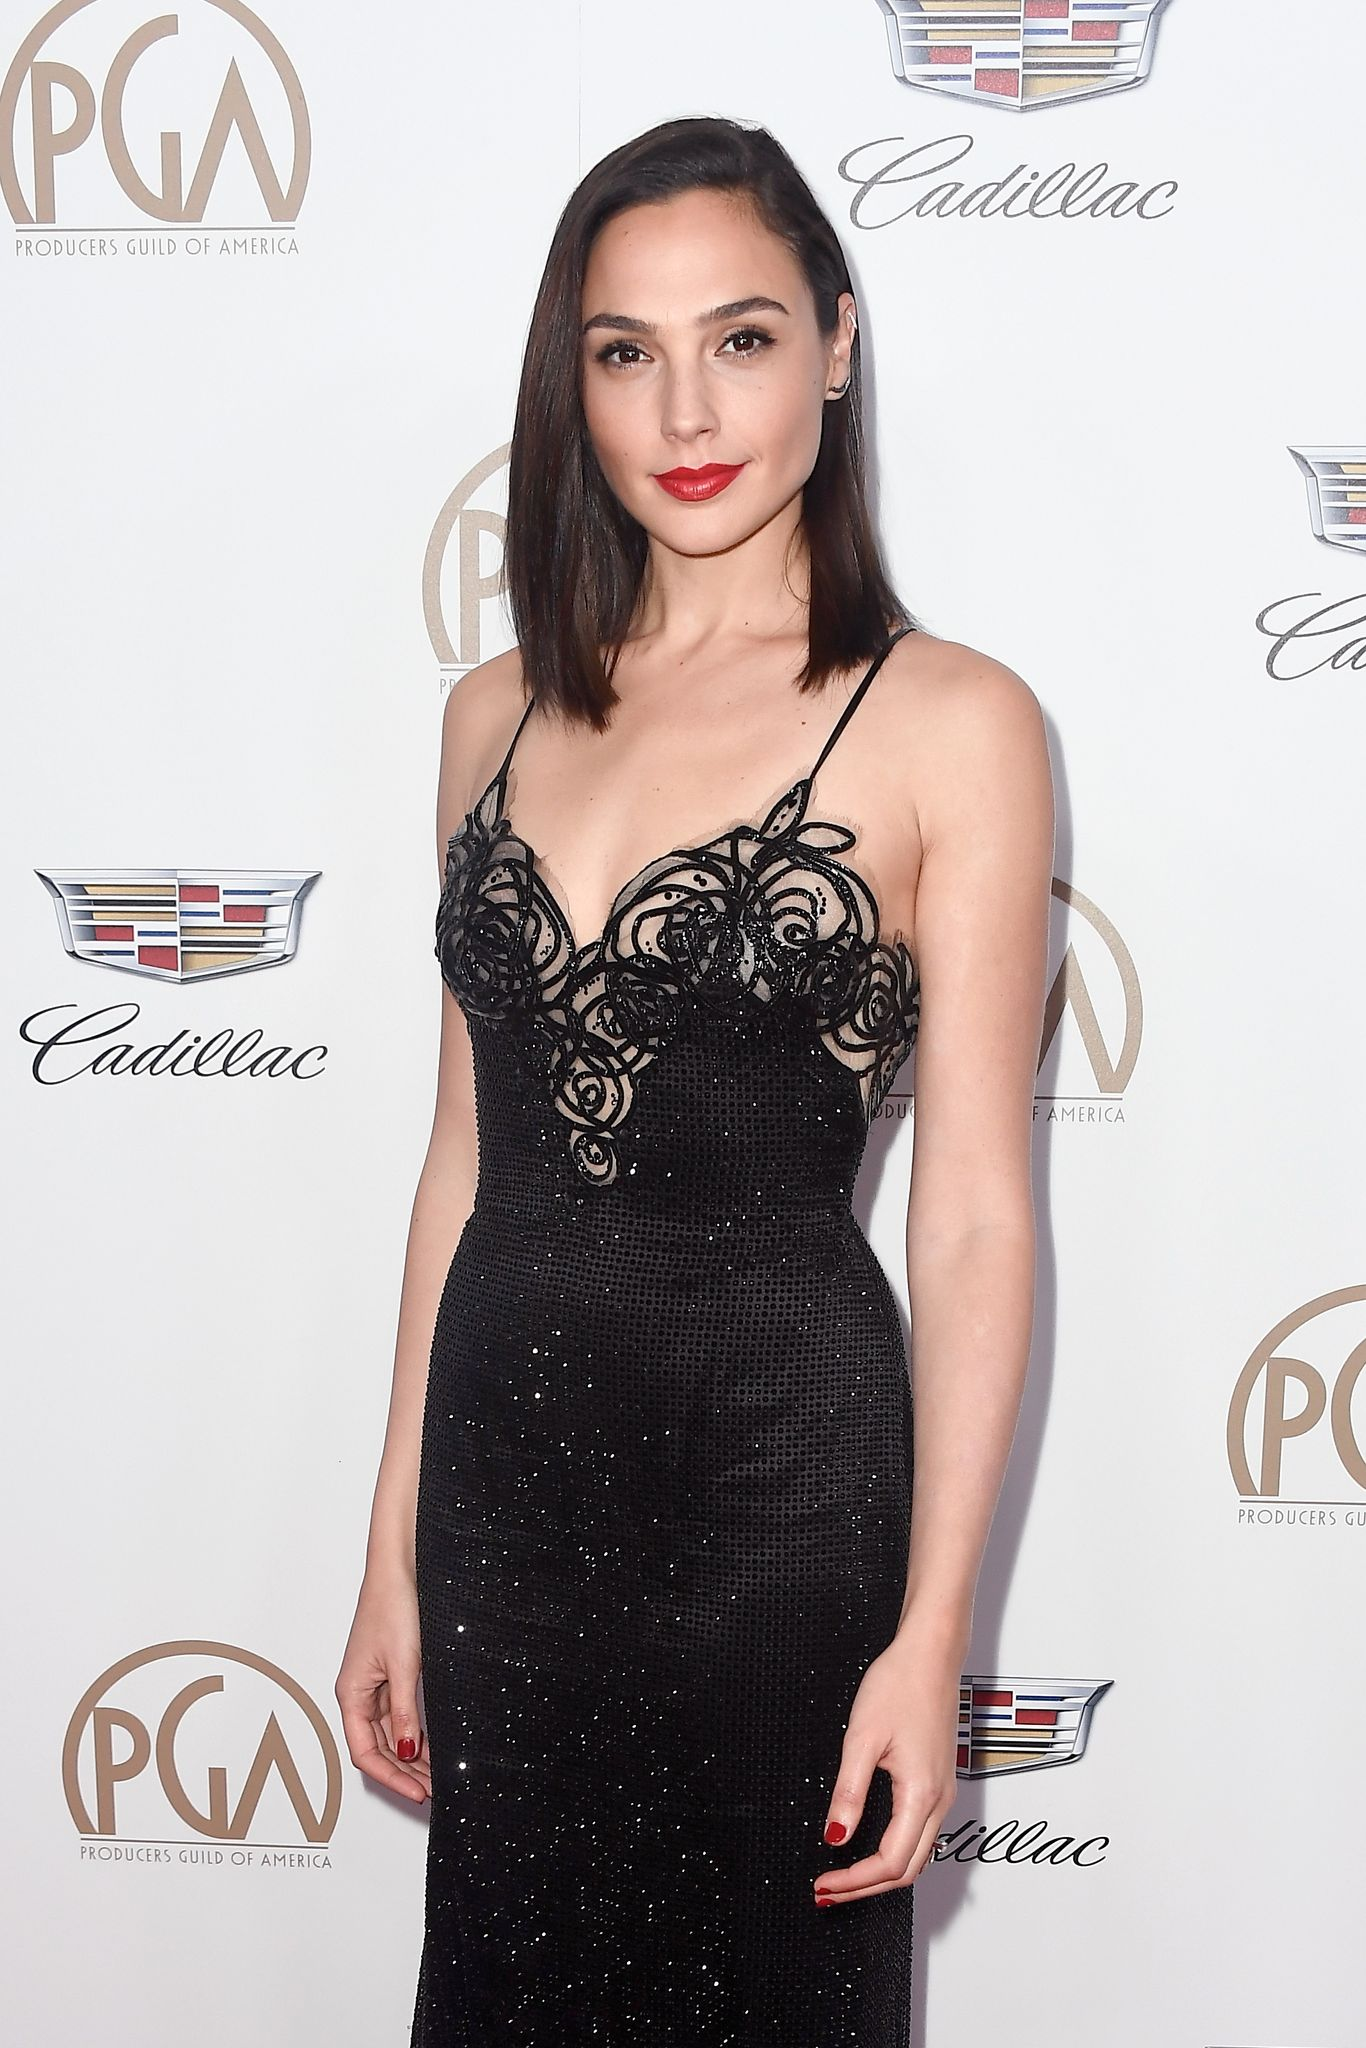 Gal Gadot attends the 29th Annual Producers Guild Awards / Getty Images